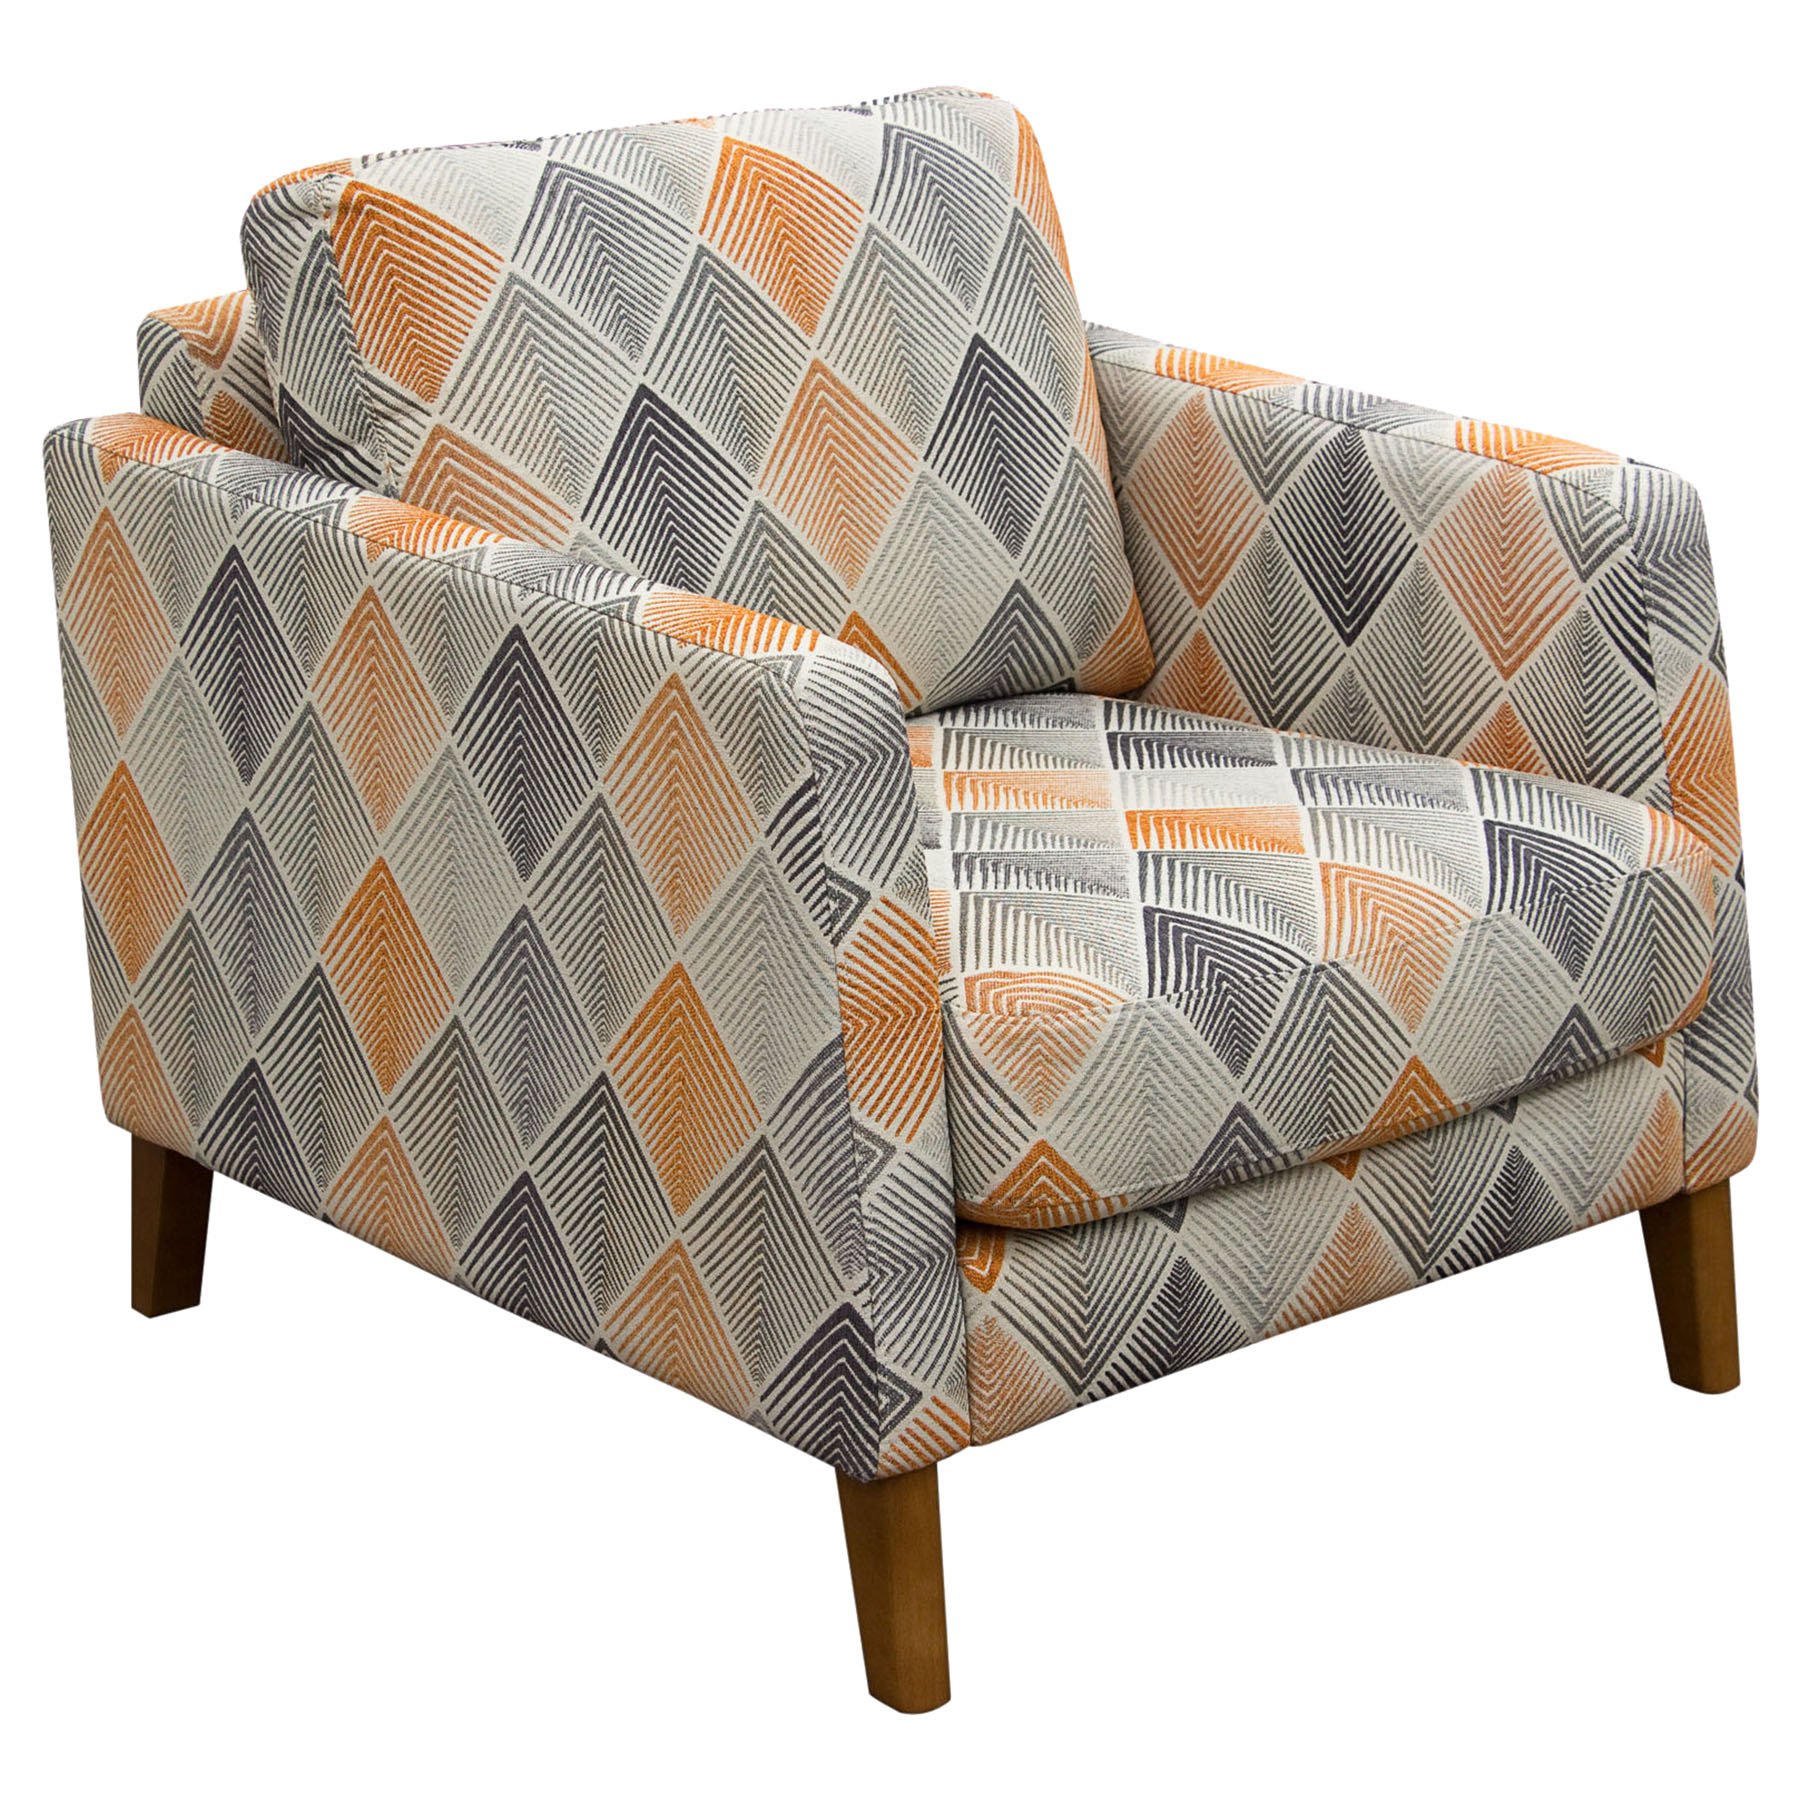 Keppel Patterned Fabric Armchair - Hawaiian Sunset